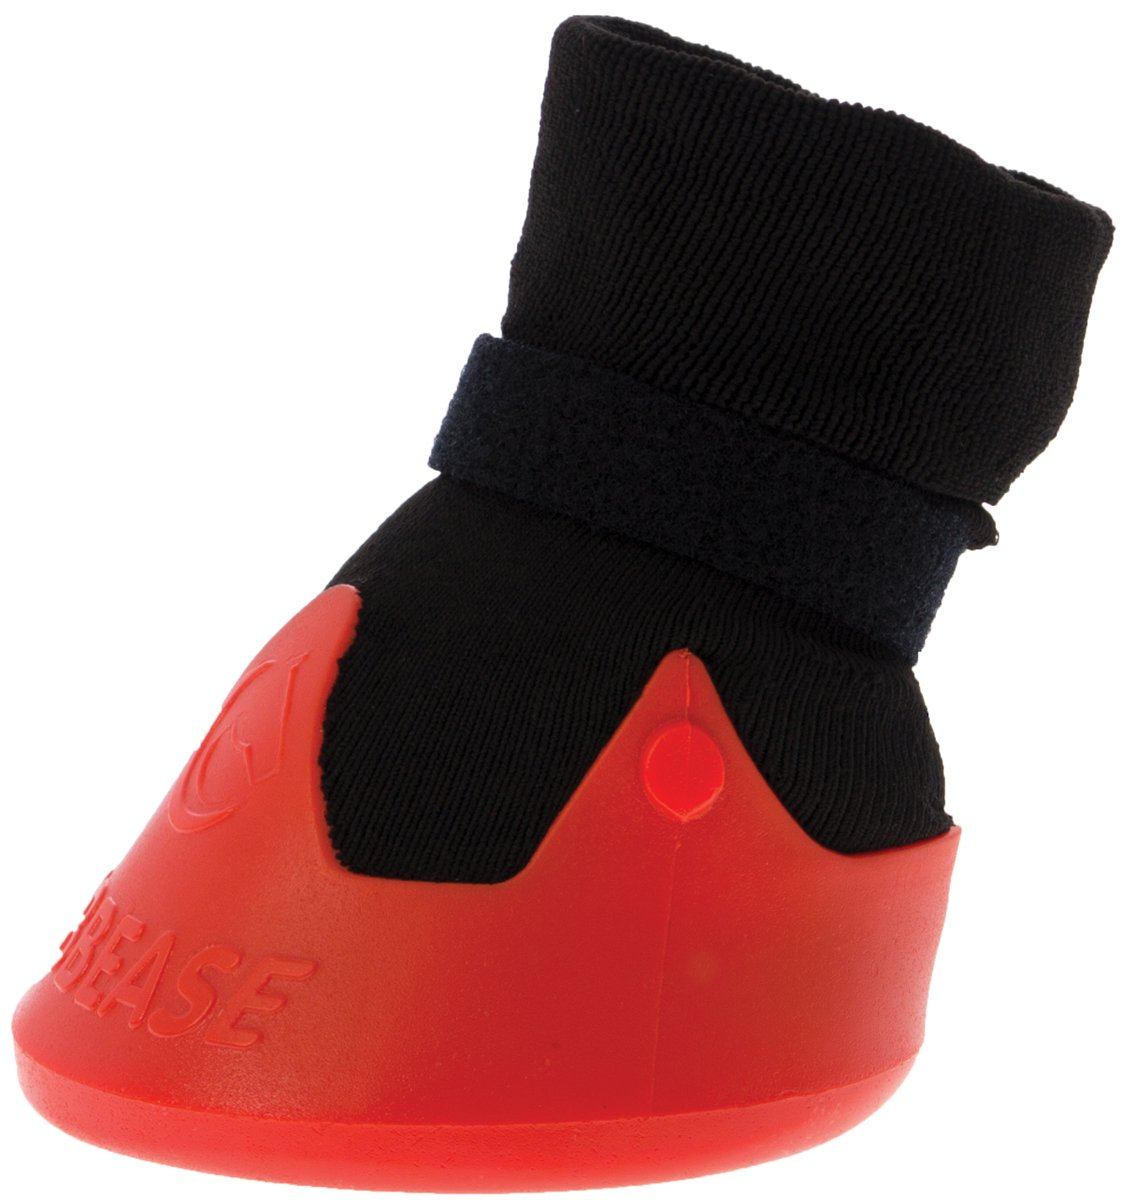 Shires Tubbease Hoof Sock Medium by Shires